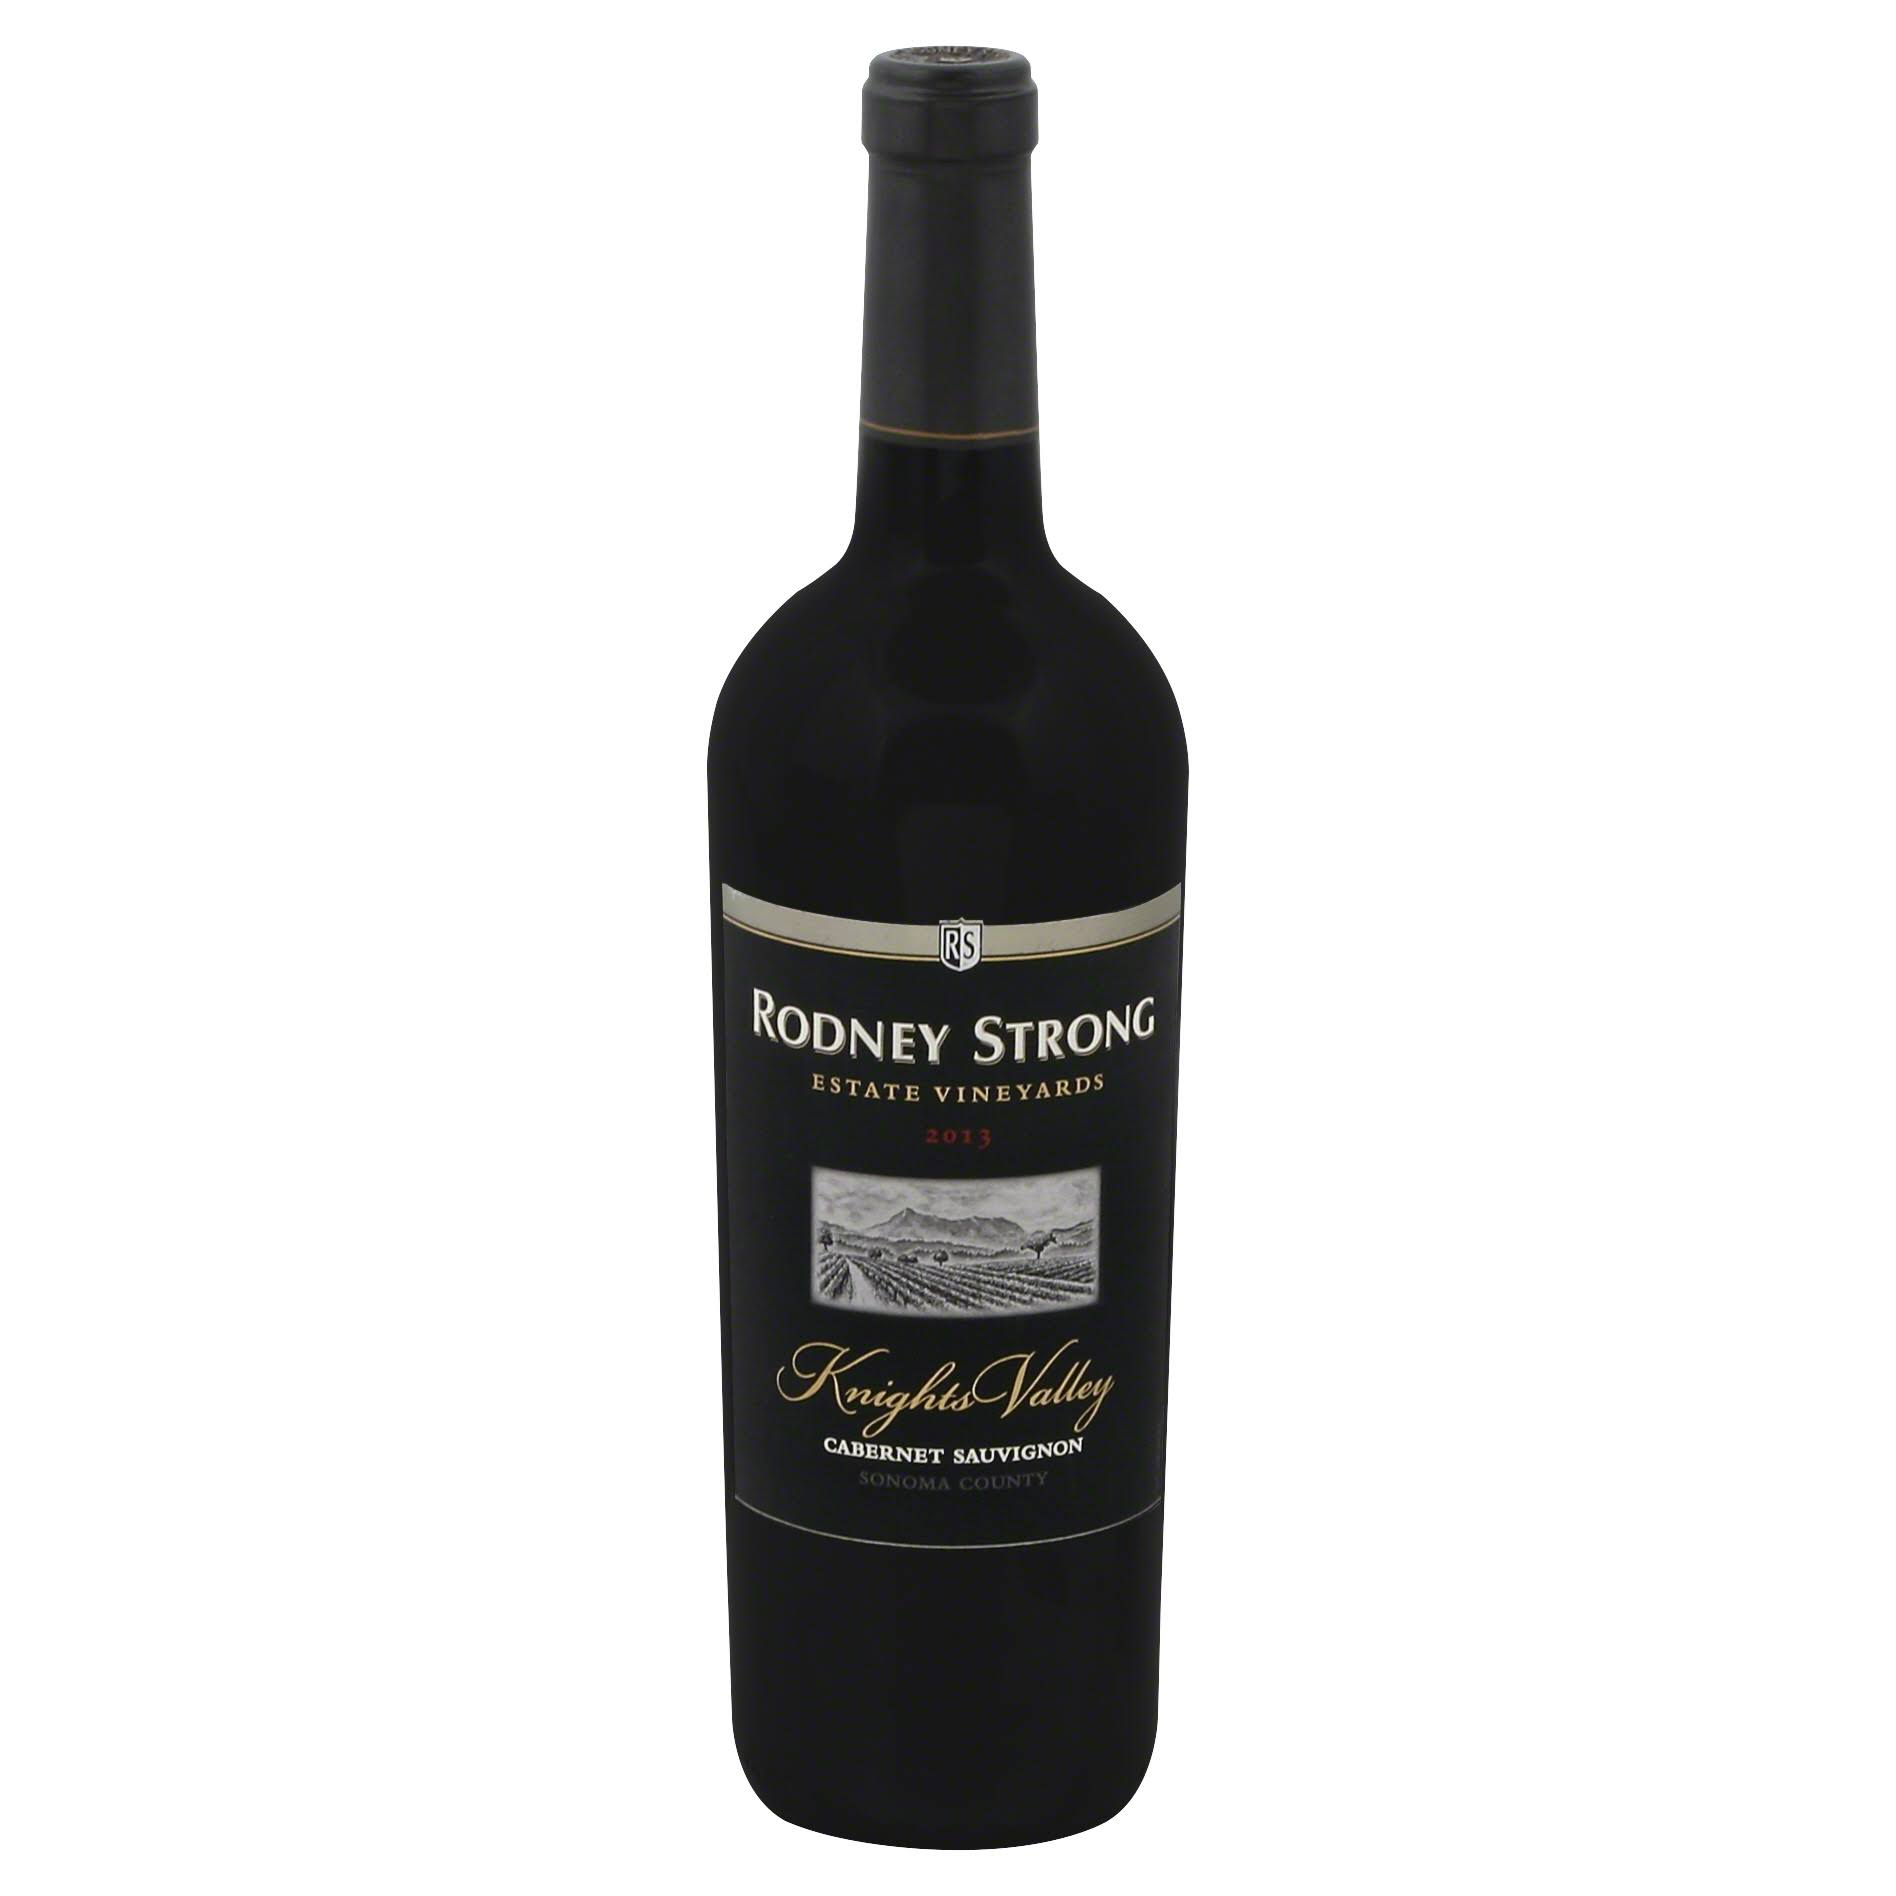 Rodney Strong Cabernet Sauvignon, Knights Valley, Sonoma County 2013 - 750 ml